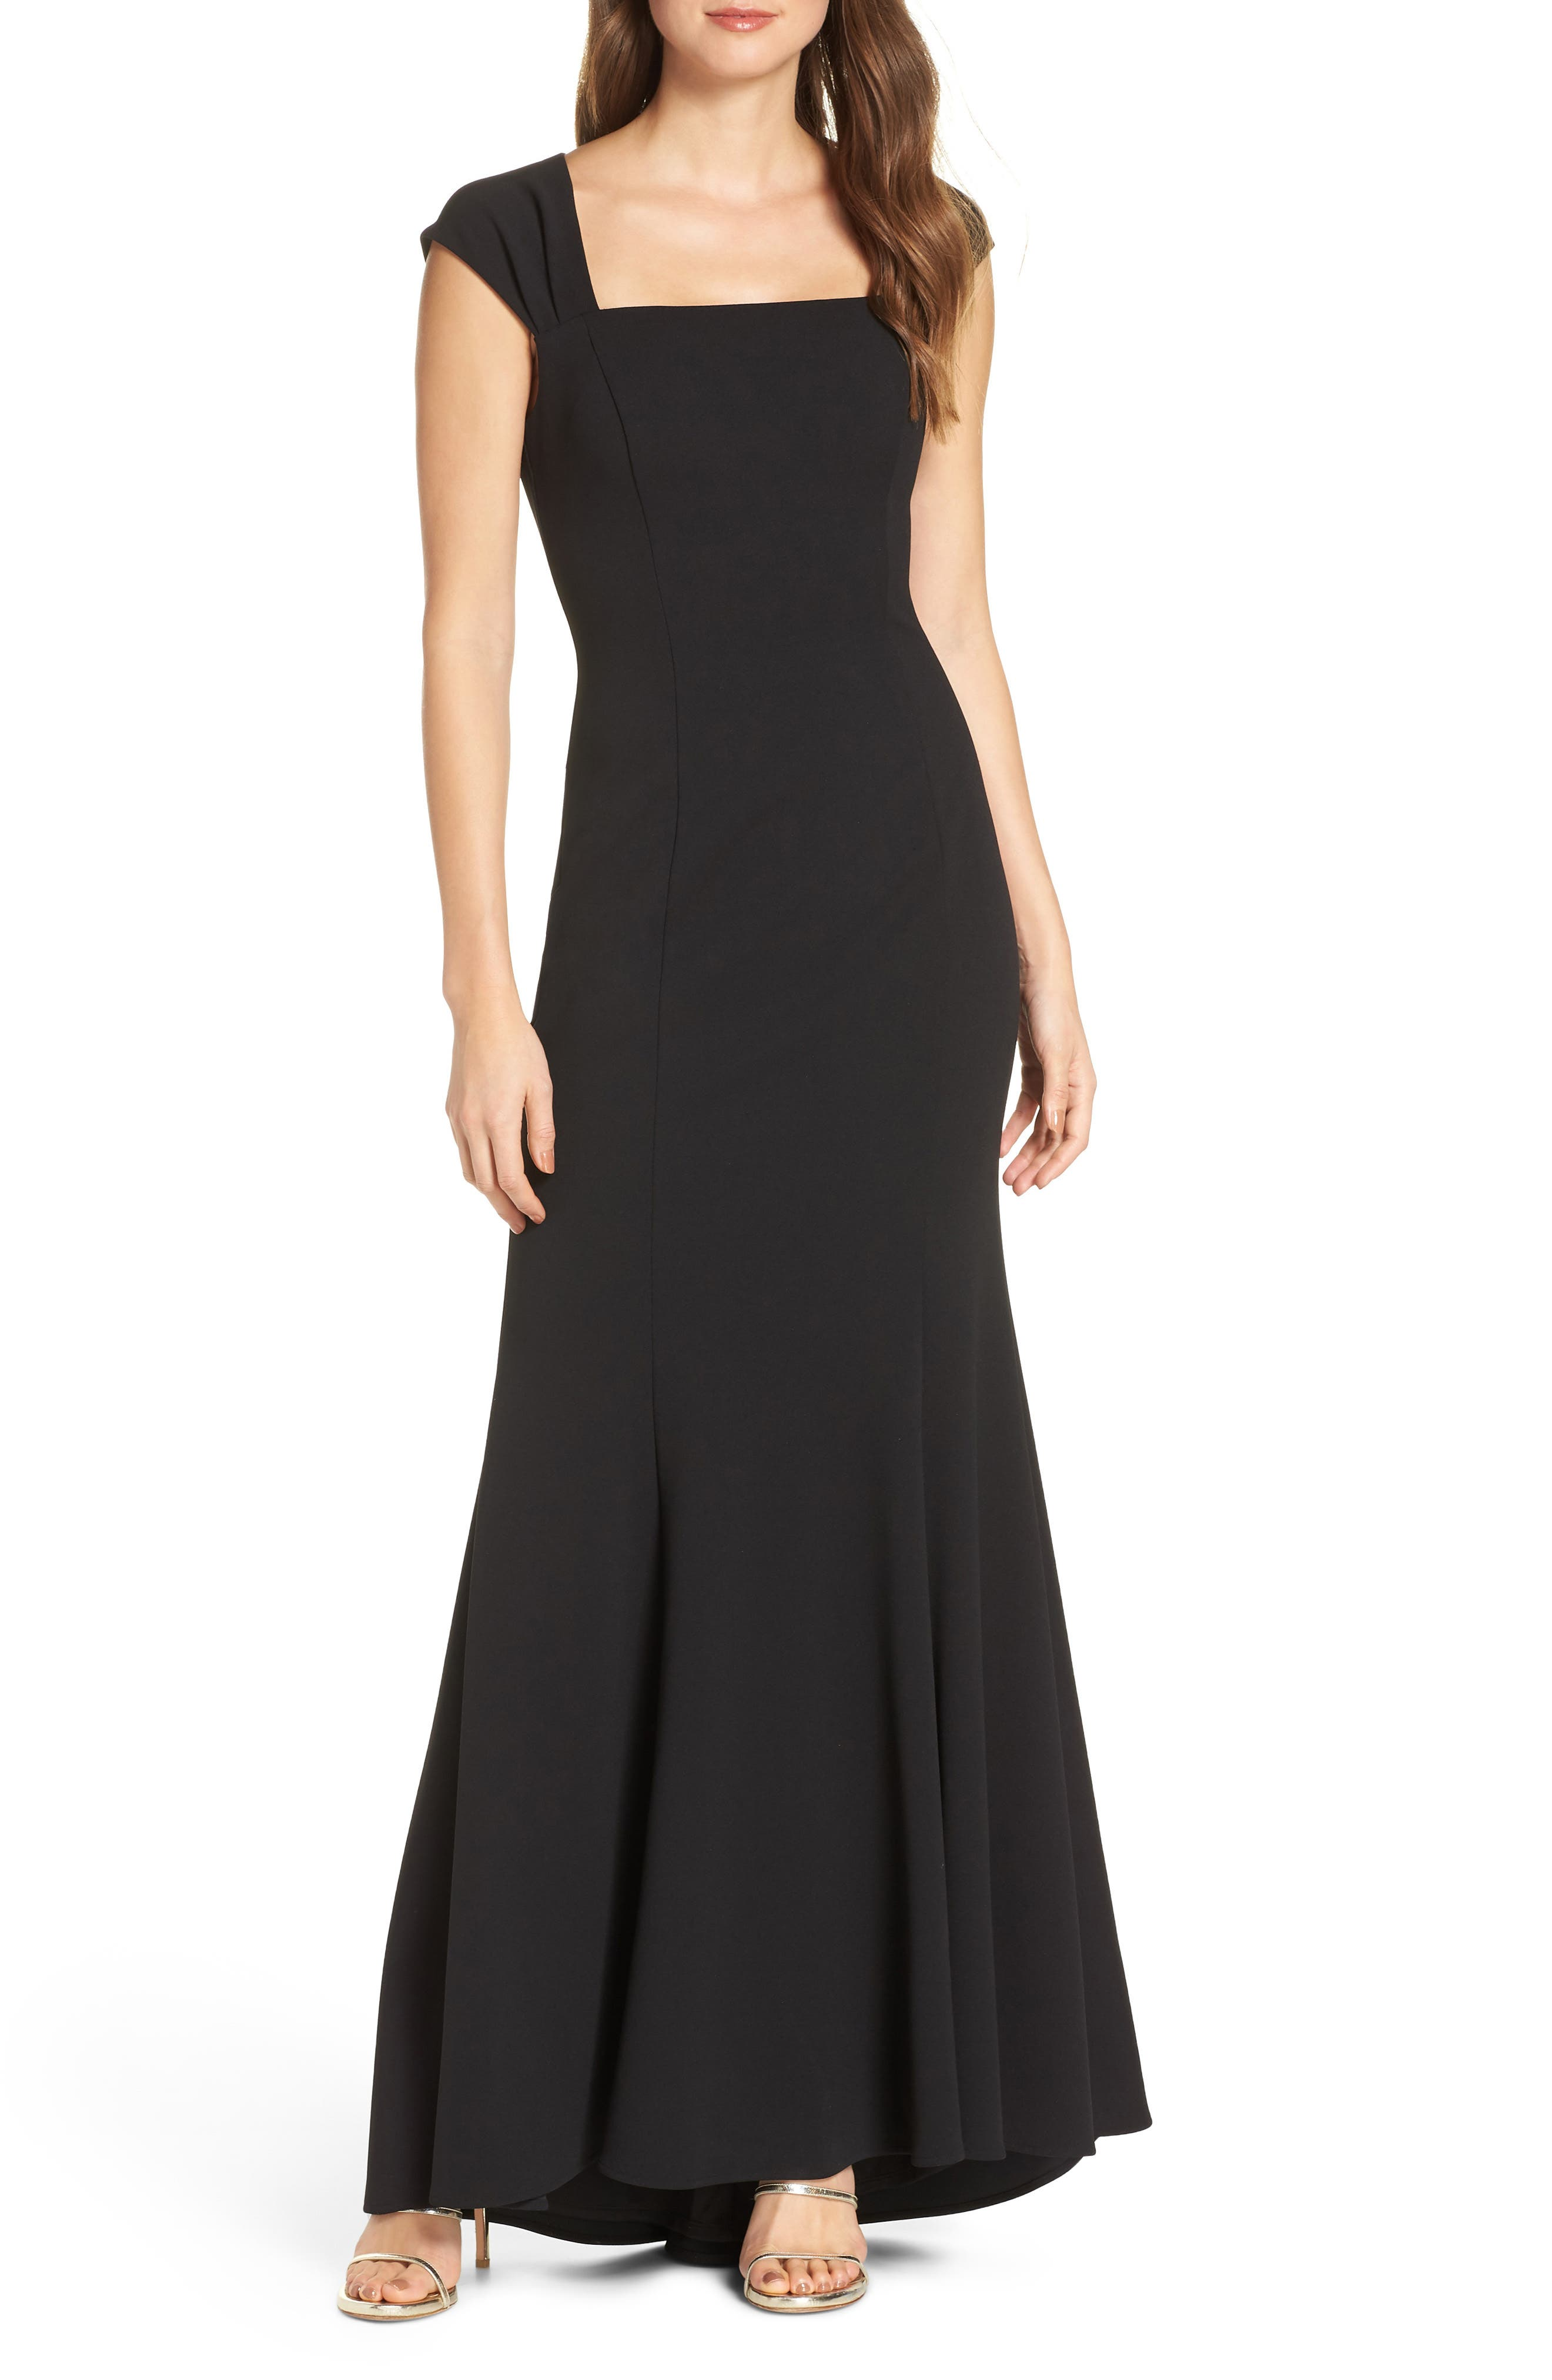 Eliza J Square Neck Scuba Crepe Evening Dress, Black